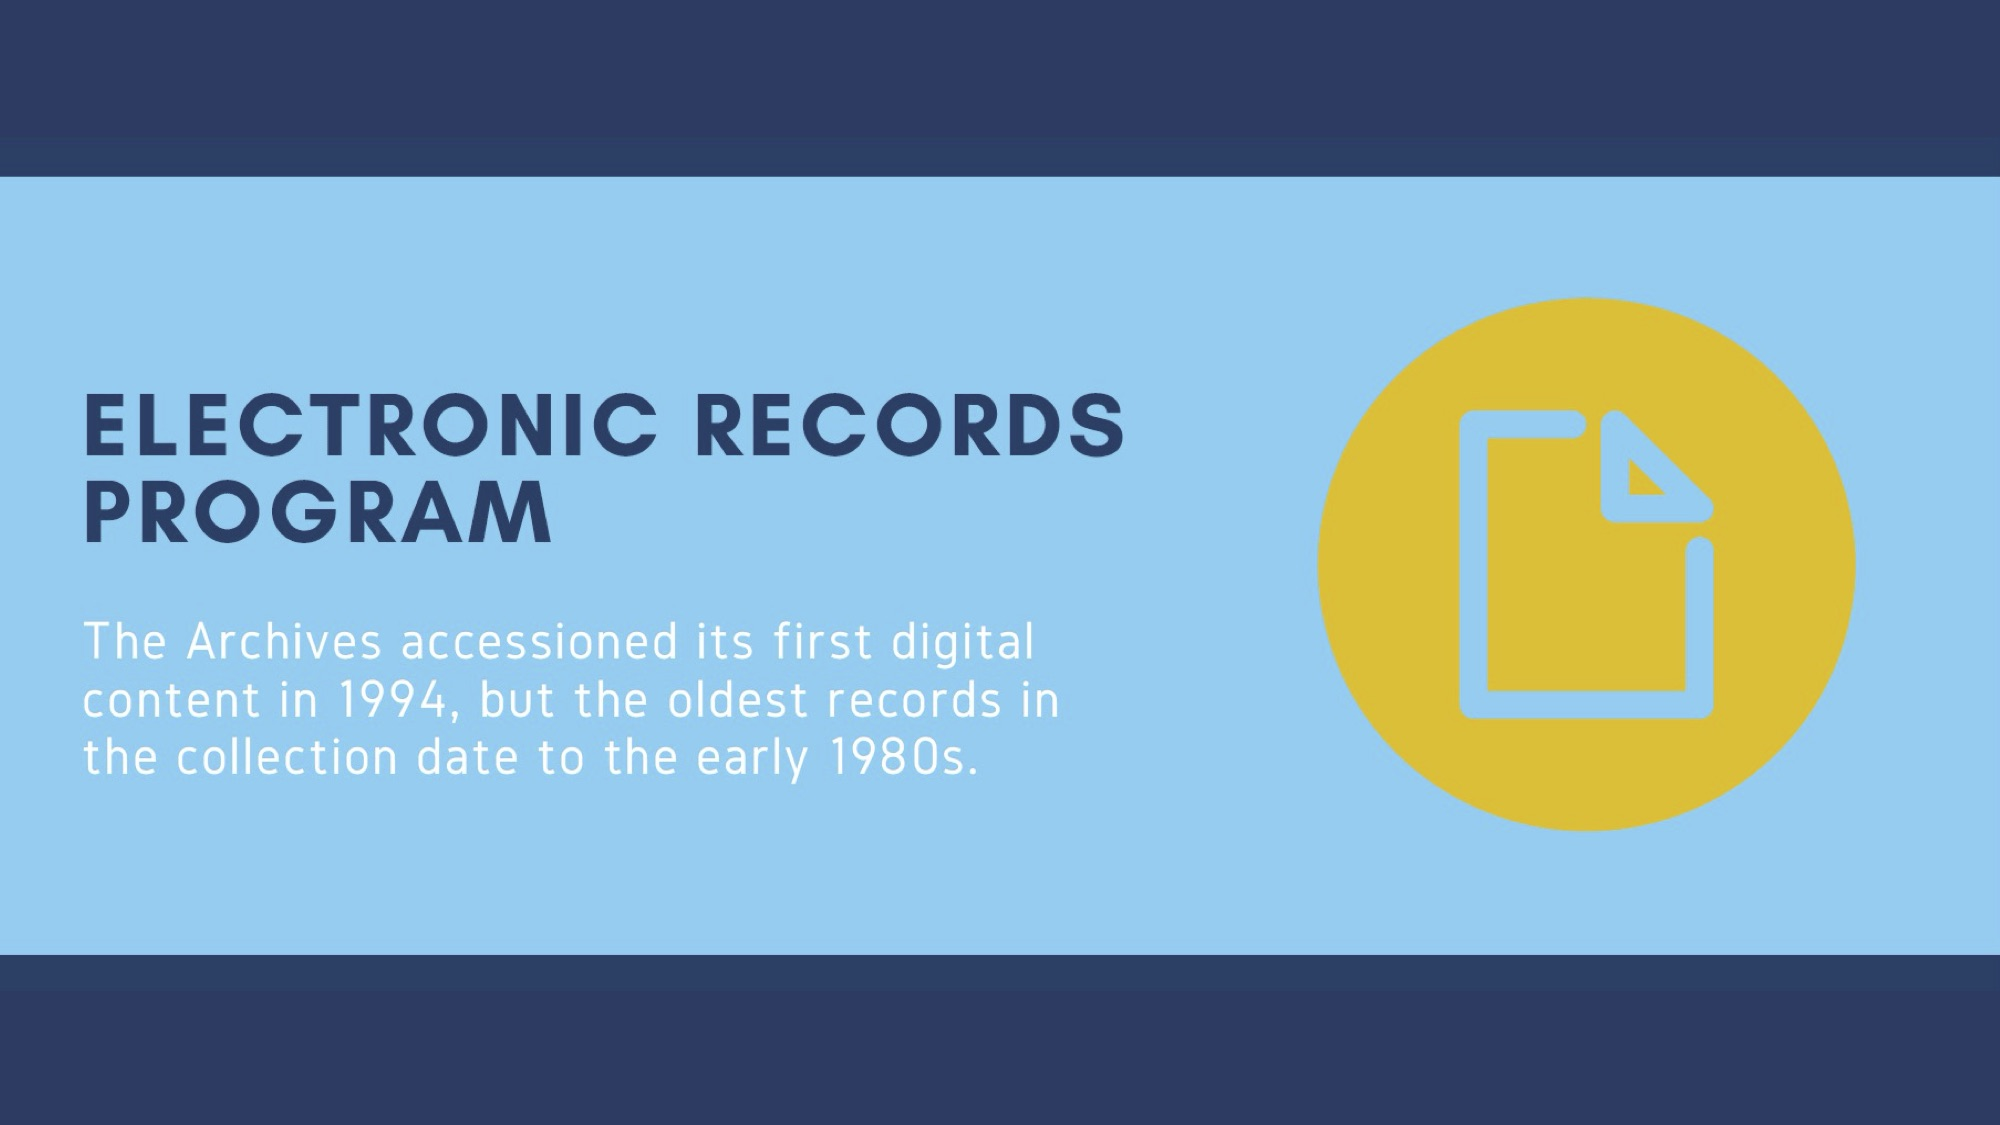 Slide 3: heading electronic records program pause body the archives accessioned its first digital co